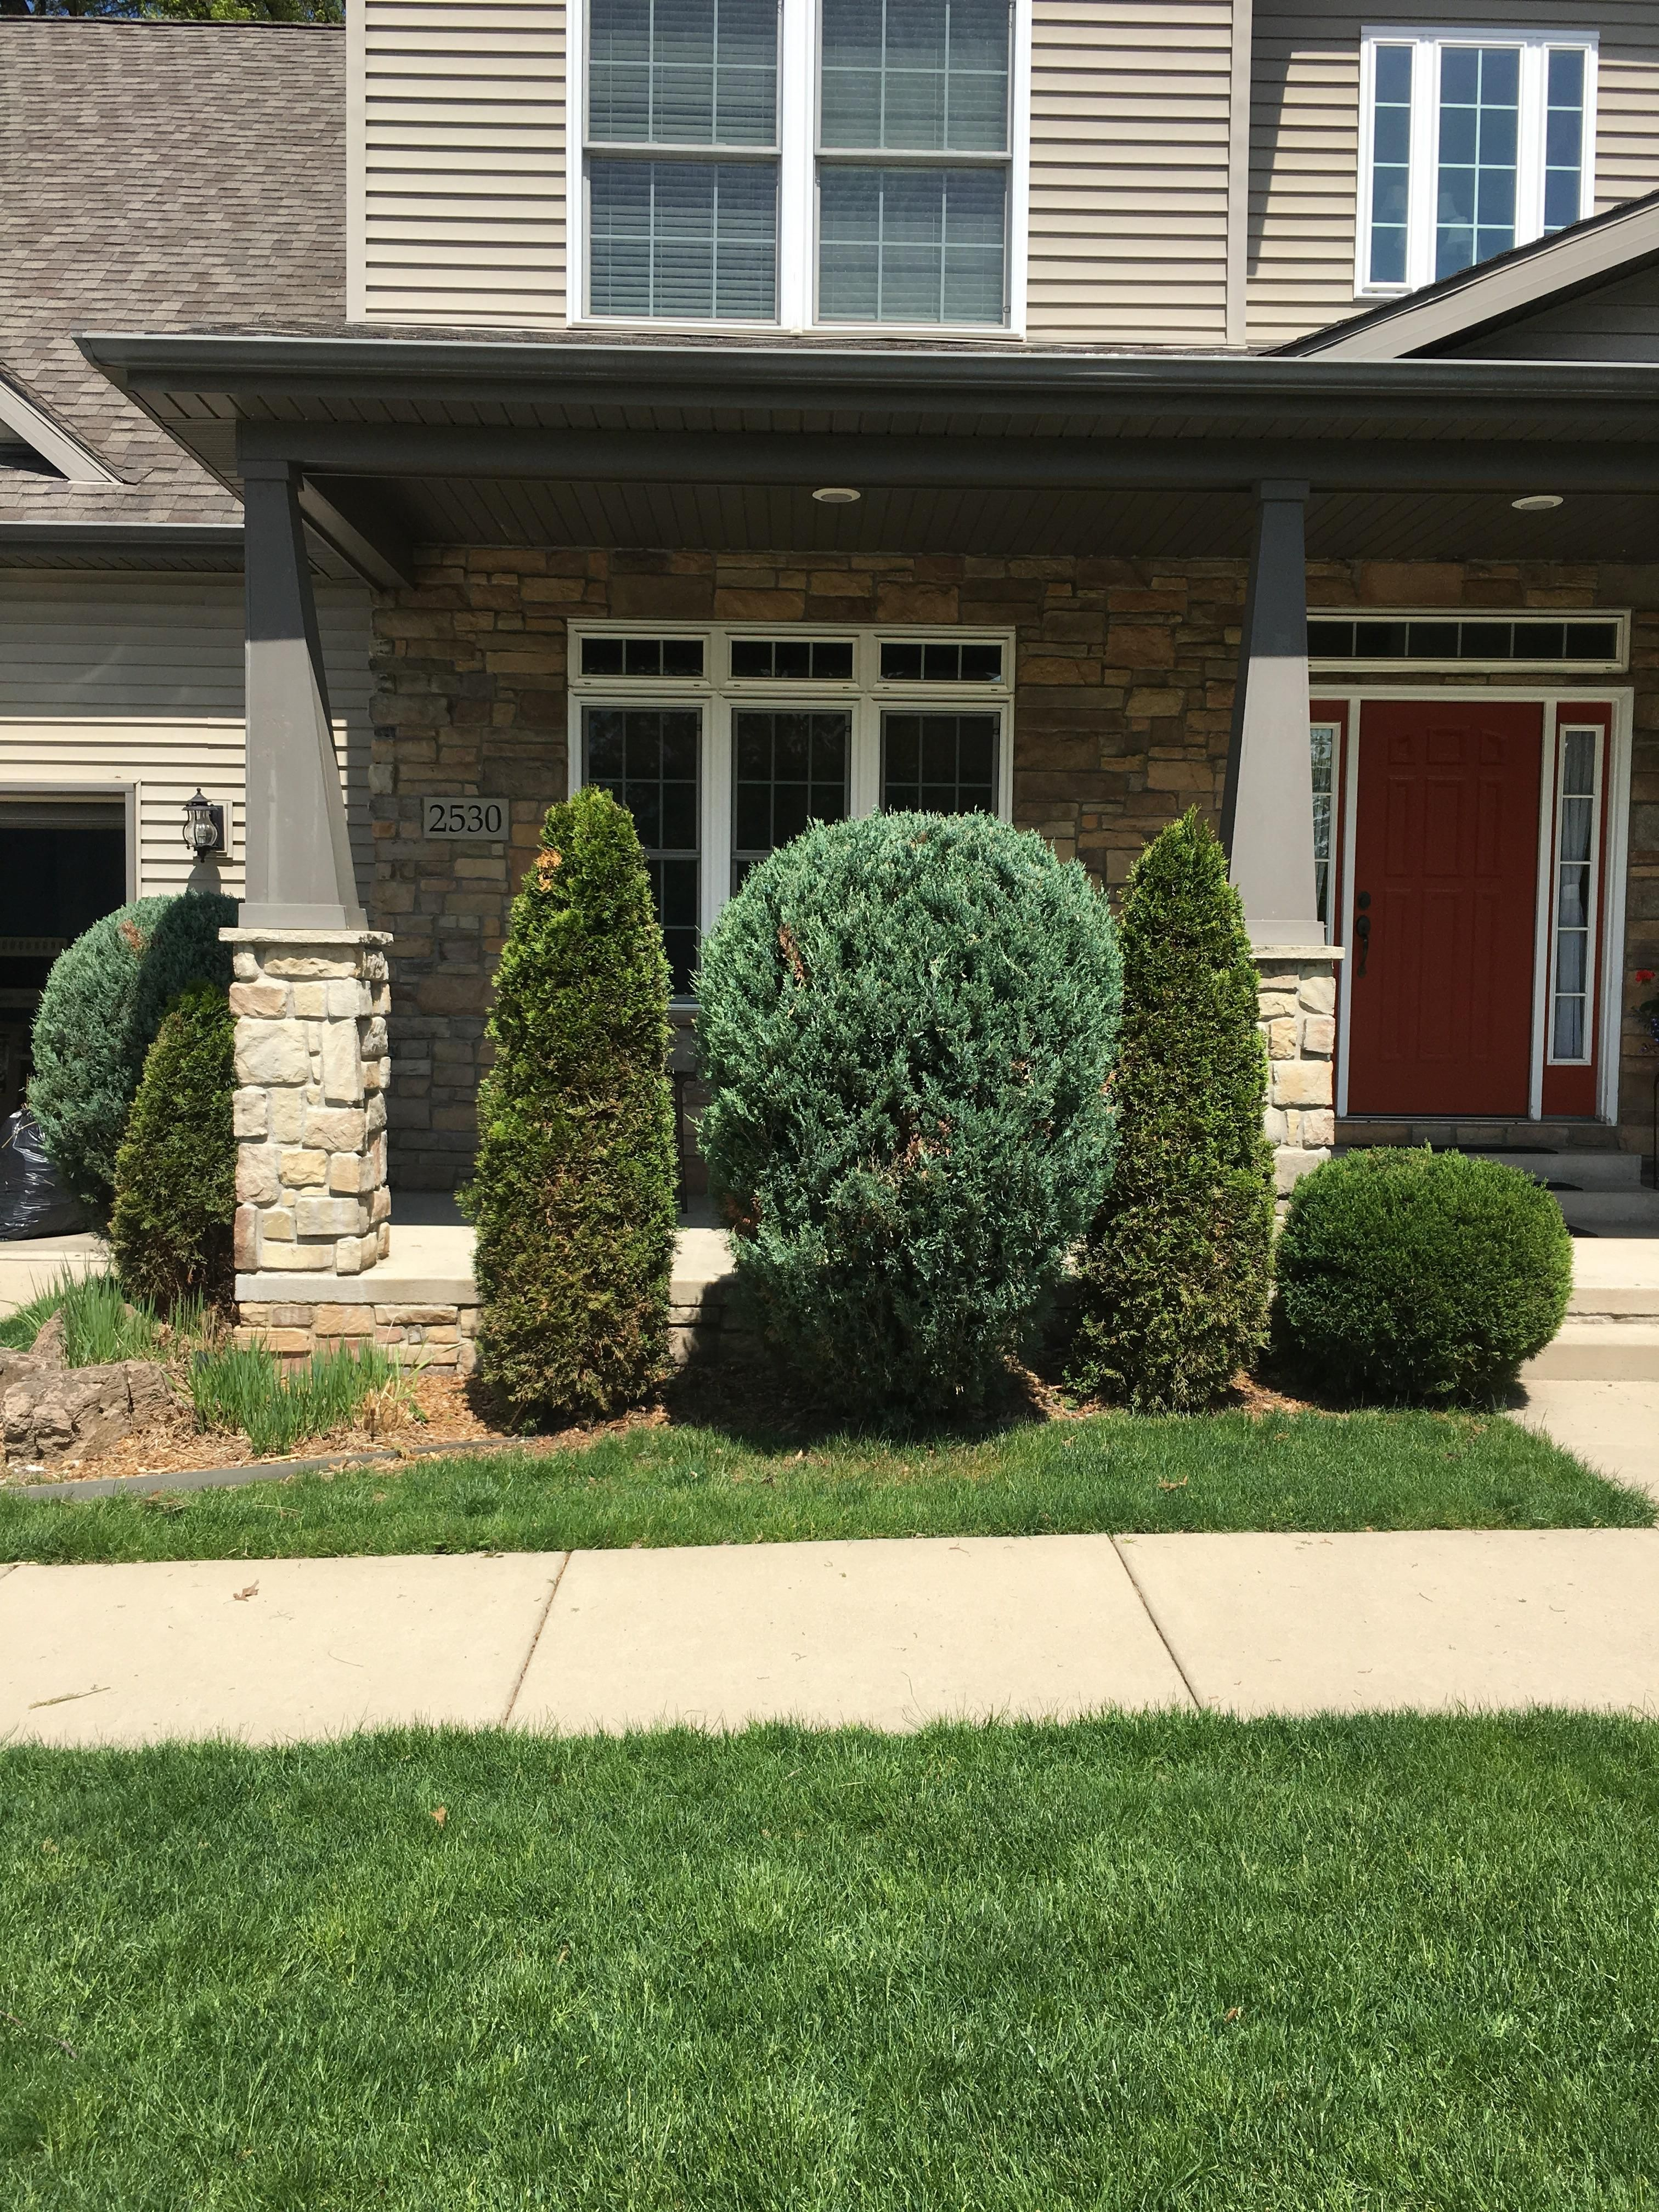 Help With Replacing These Overgrown Bushes Im In Zone 5 Northwest Indiana I Would Like To Take T Organic Gardening Books Educational Garden Low Growing Shrubs